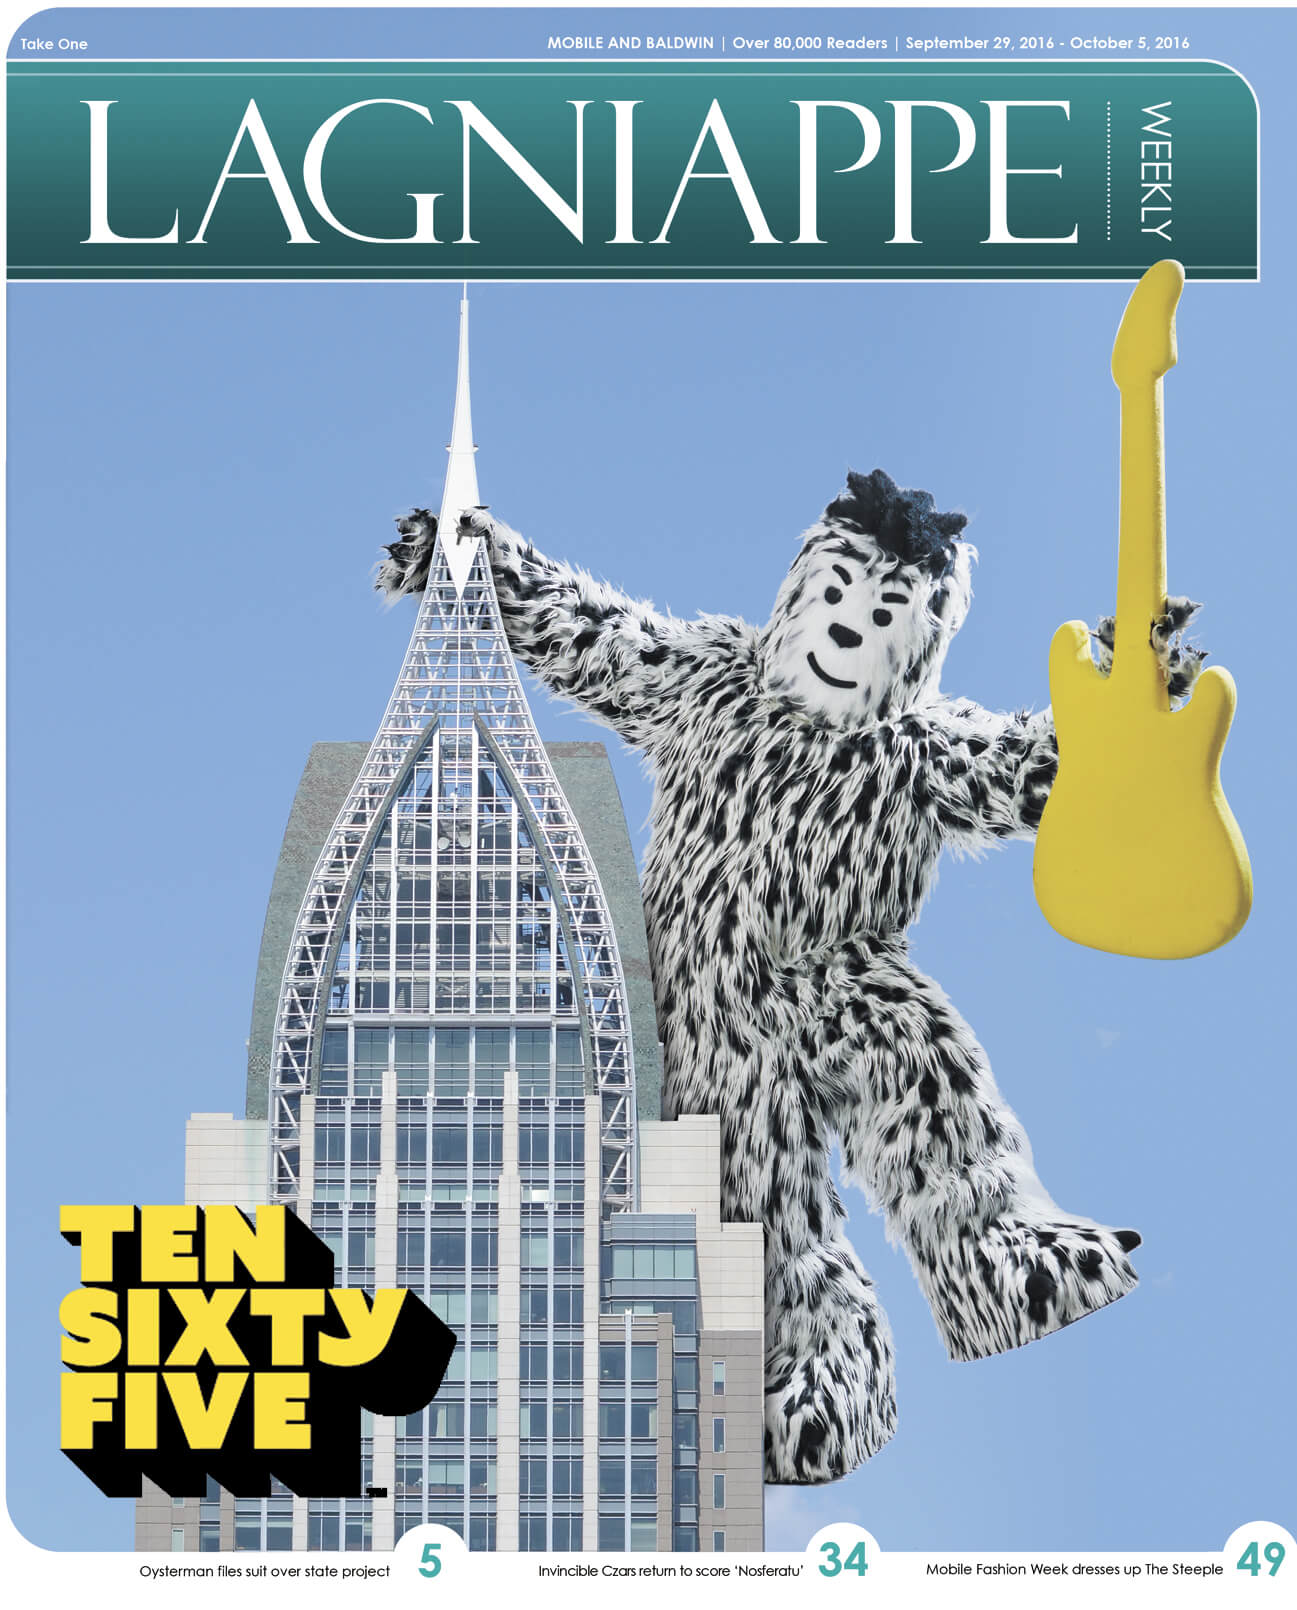 Lagniappe: September 29 – October 5, 2016